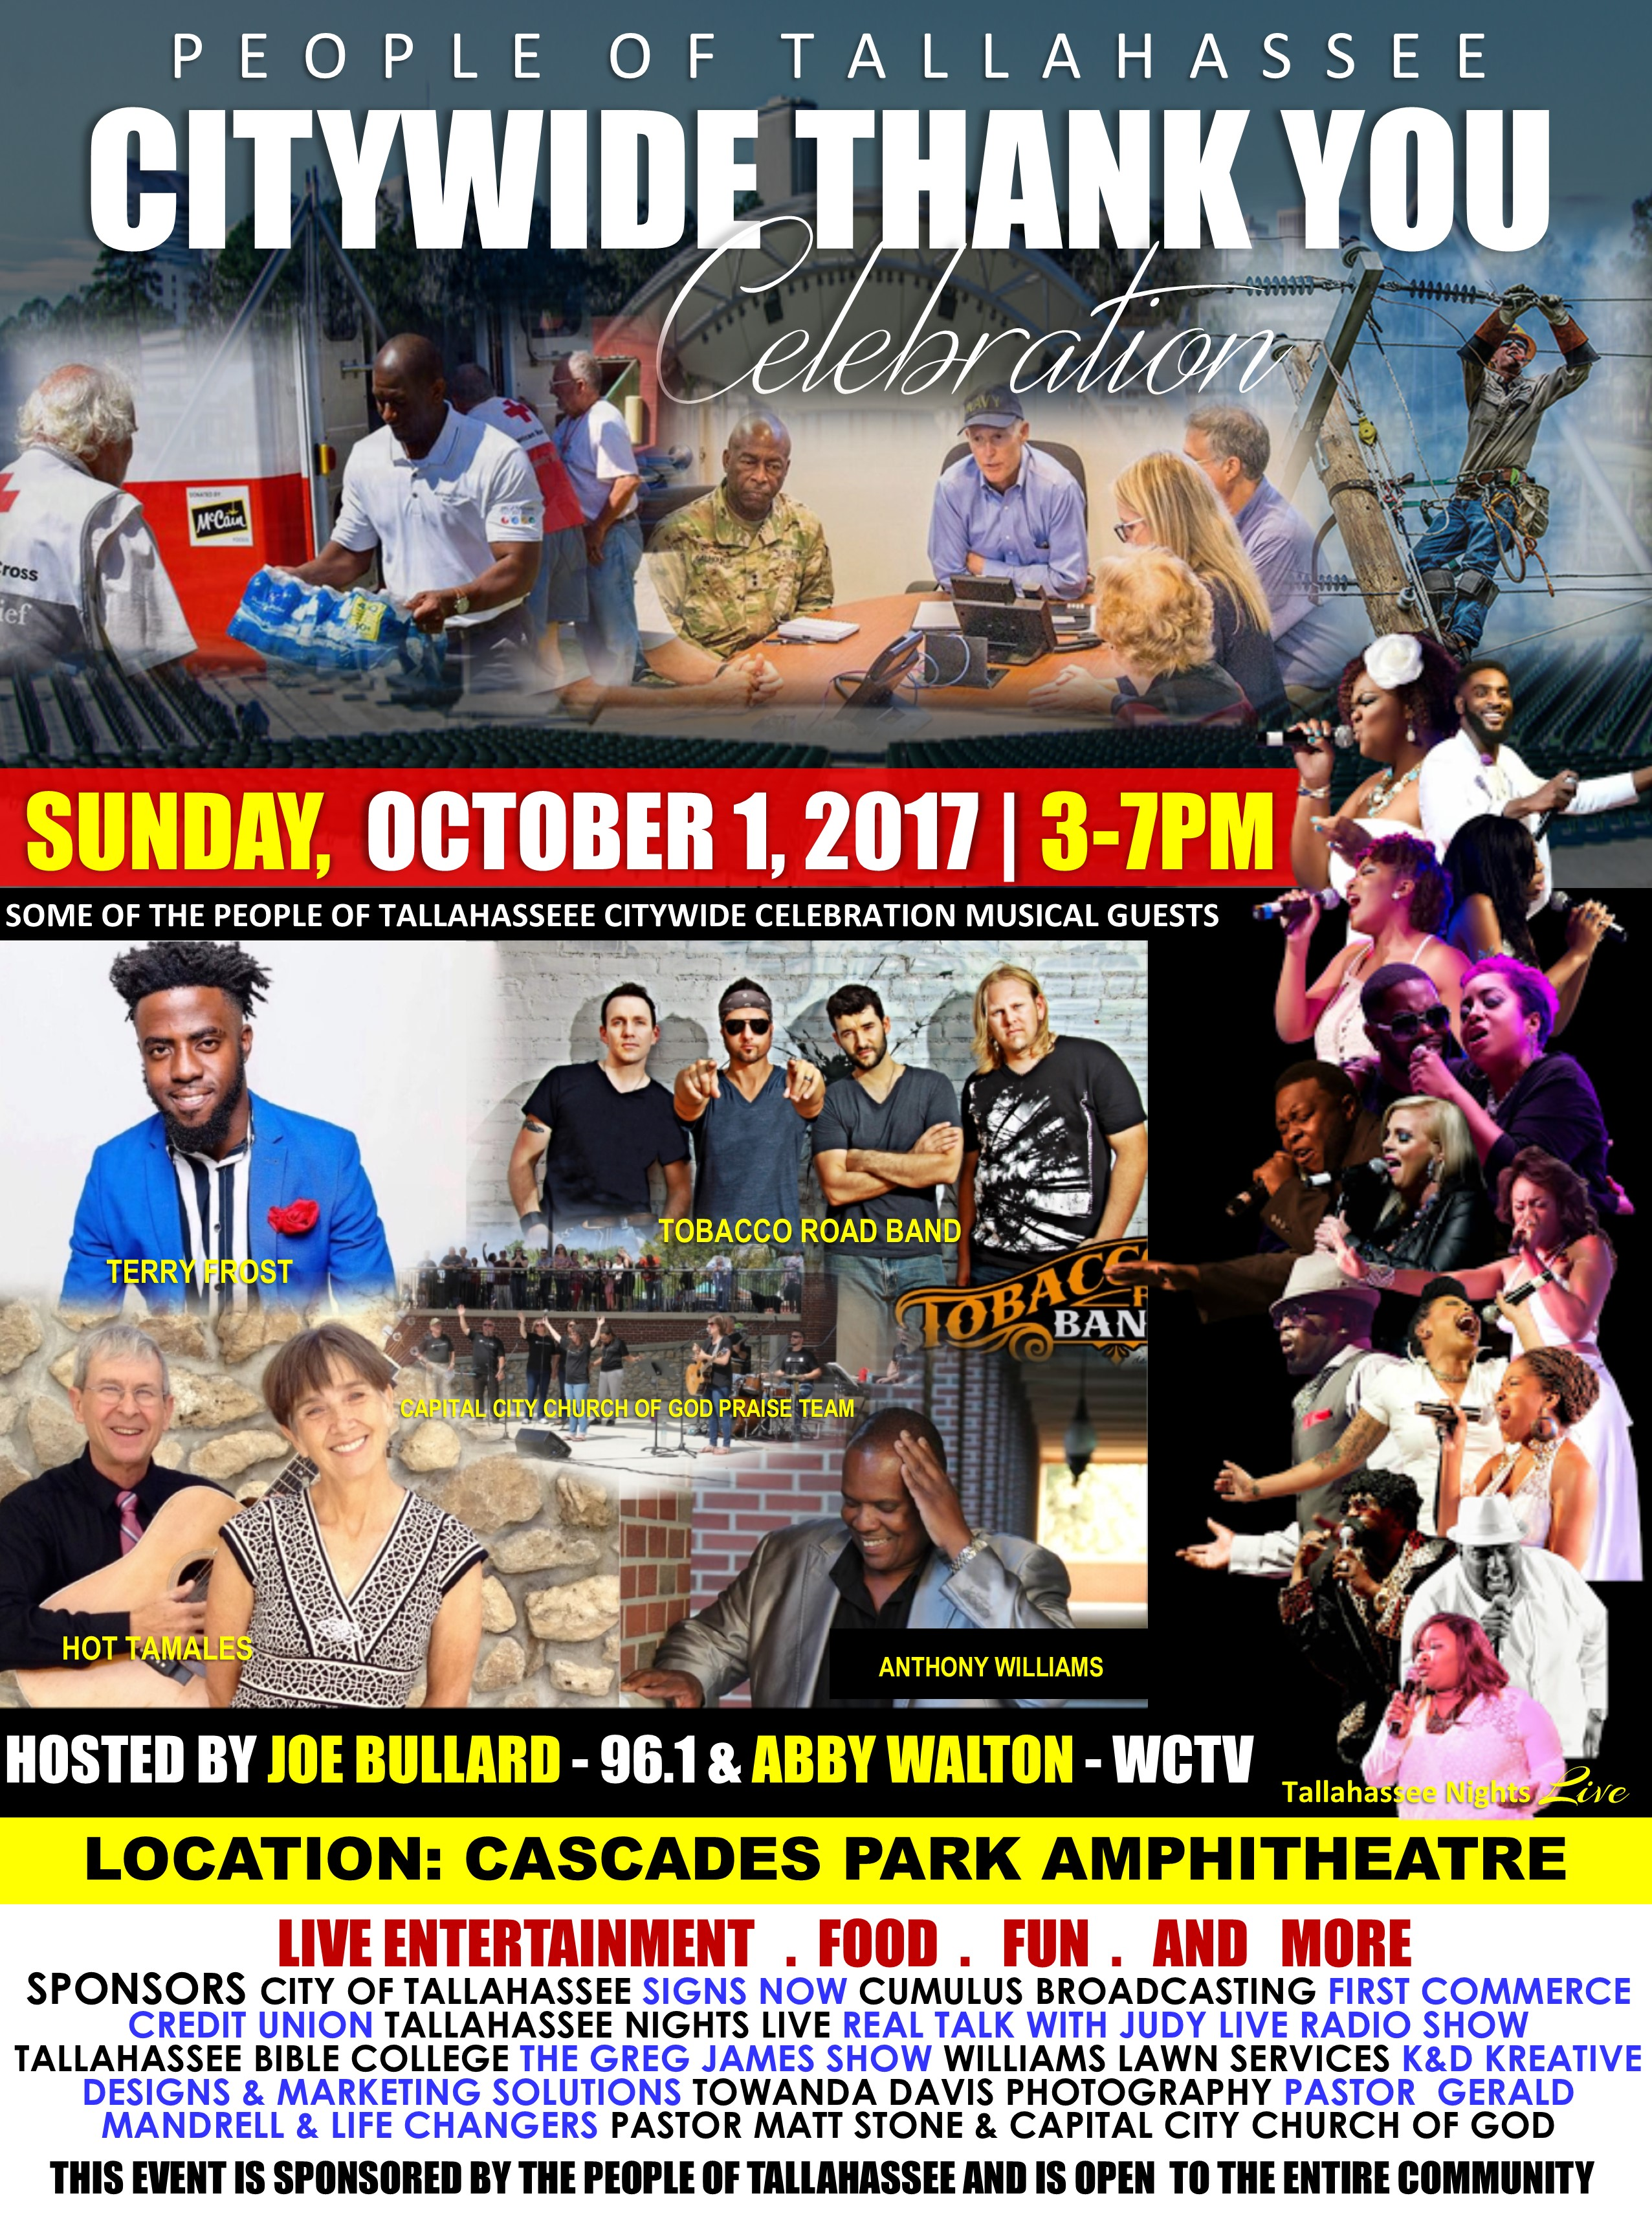 Citywide TY EVENT FLYER - Musical Guest